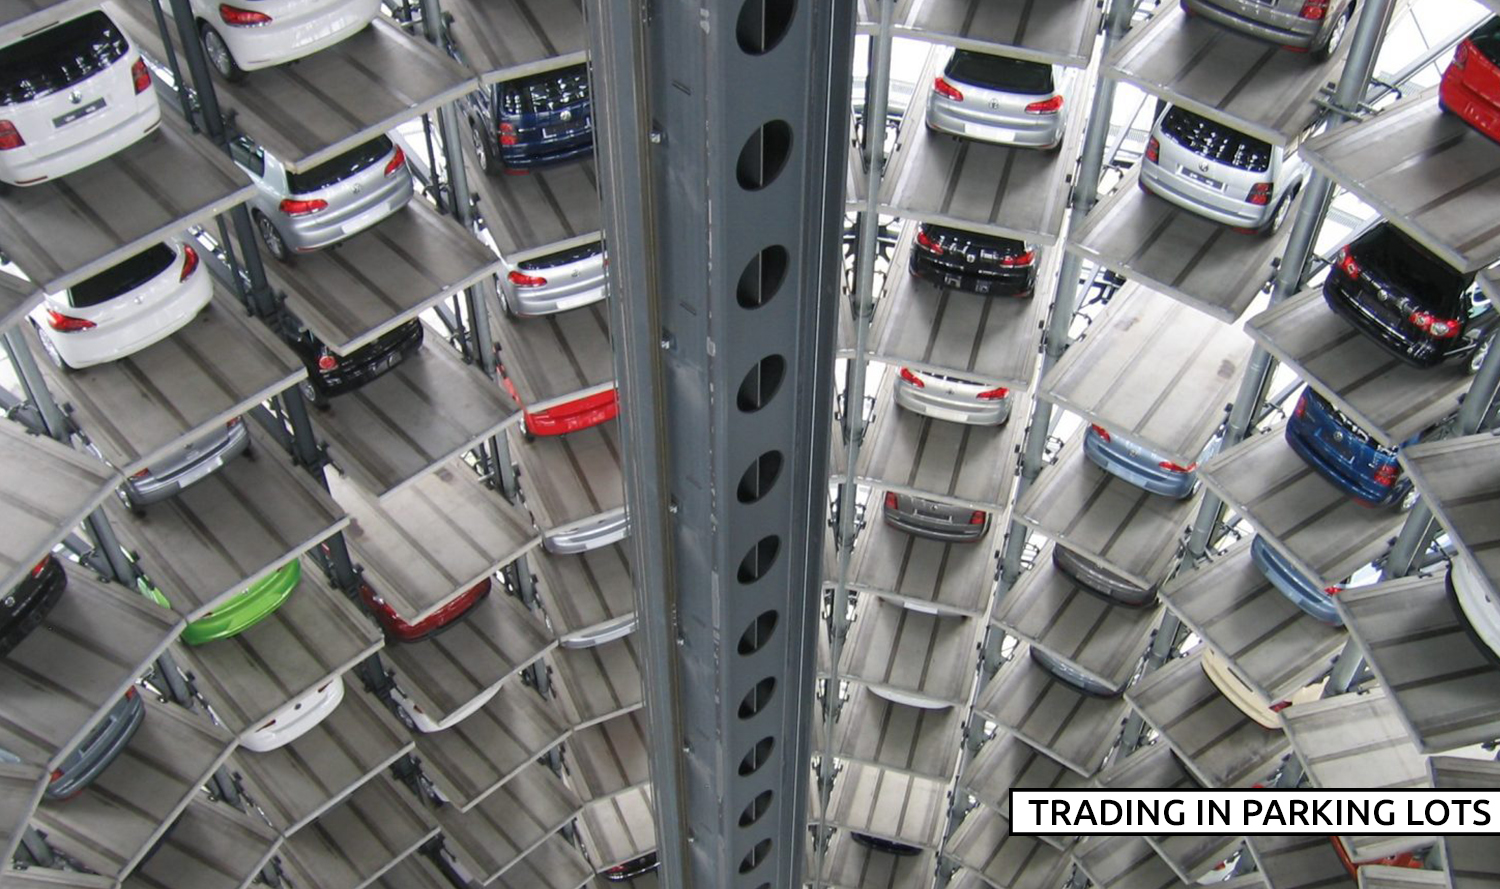 trading in parking lots